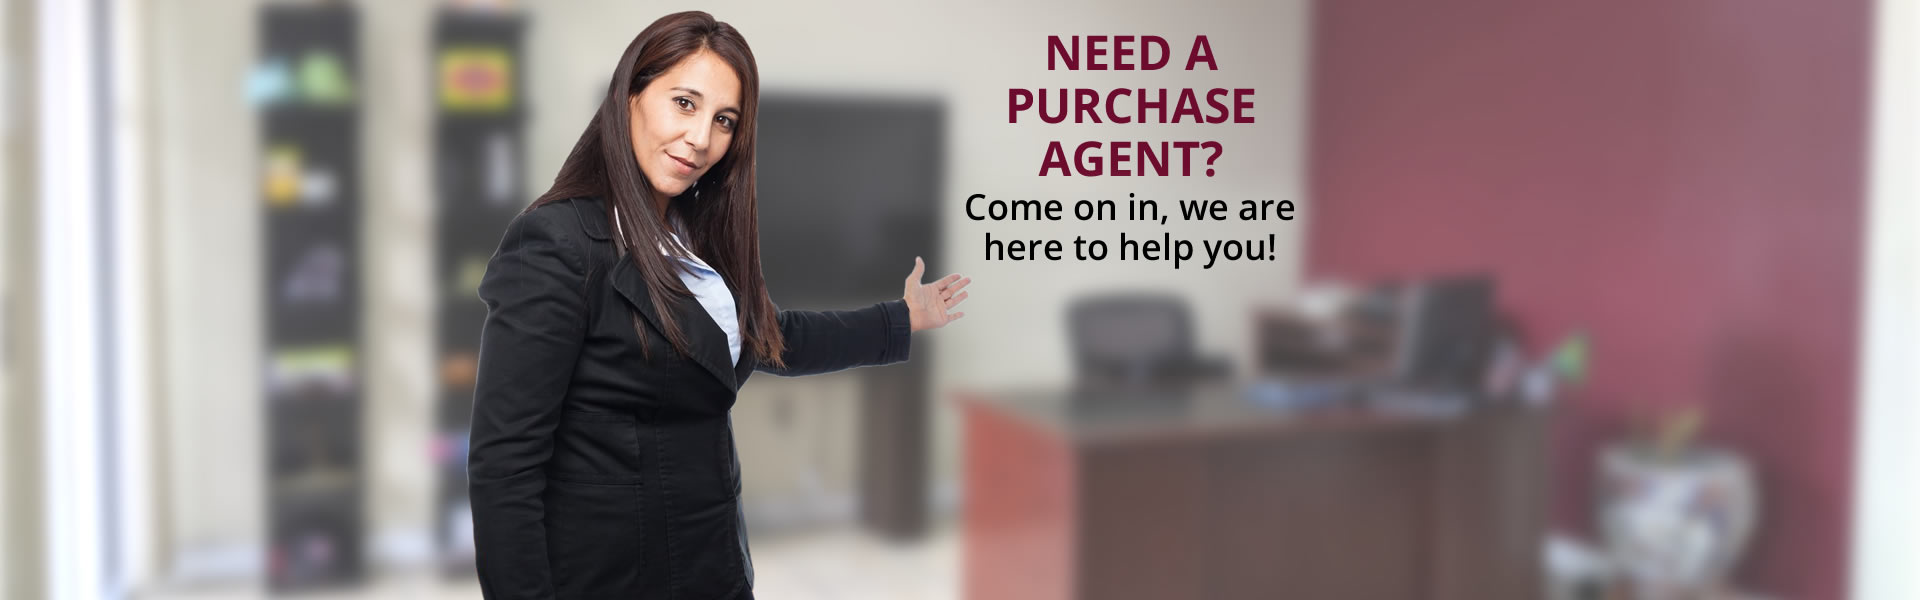 Need a purchase agent?